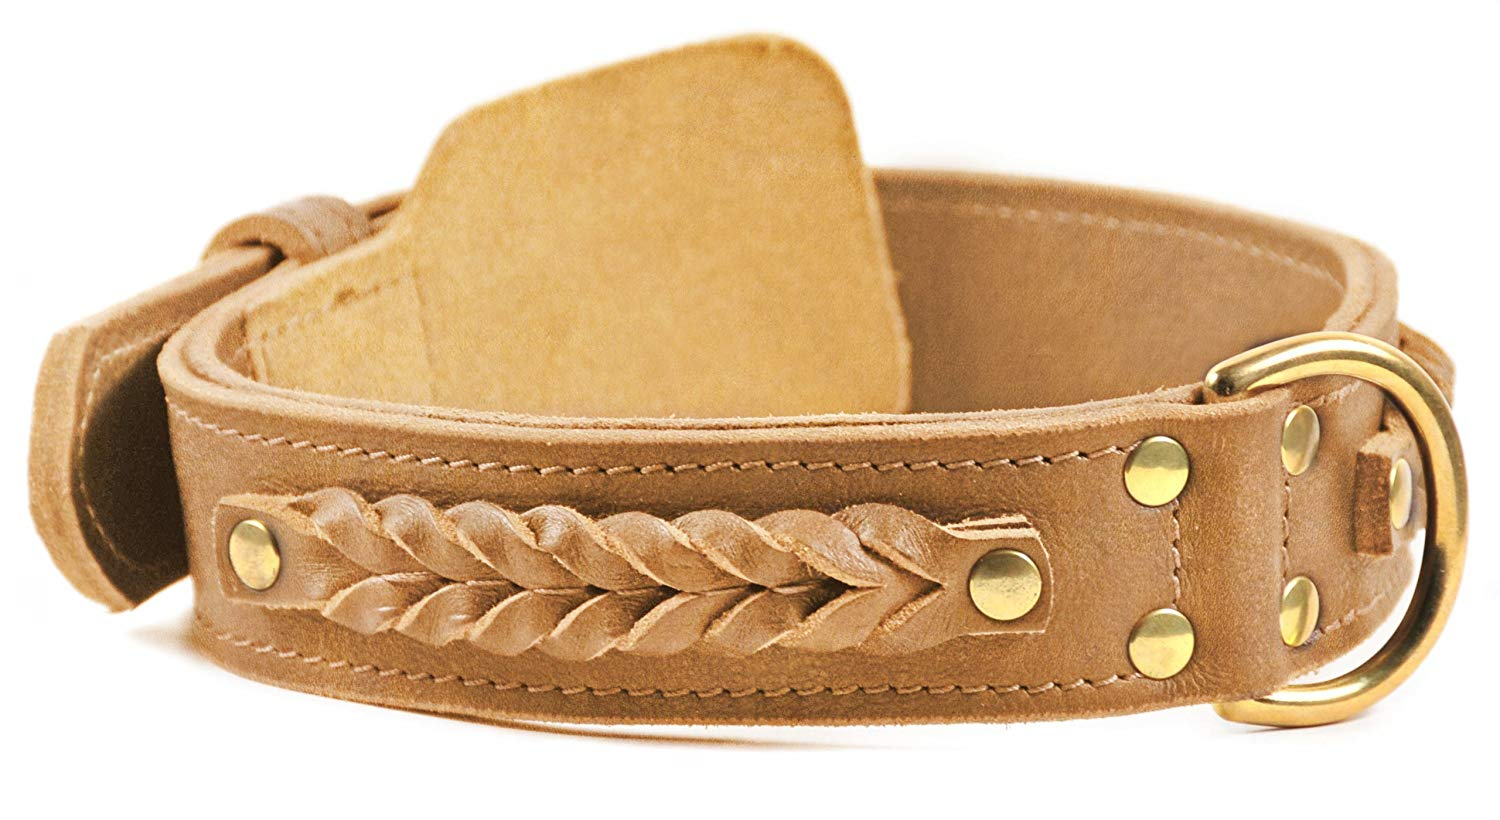 "Dean and Tyler ""BRAIDED HEAVEN"", Leather Dog Collar with Solid Brass Hardware - Tan - Size 32-Inch by 1-3/4-Inch - Fits Neck 30-Inch to 34-Inch"